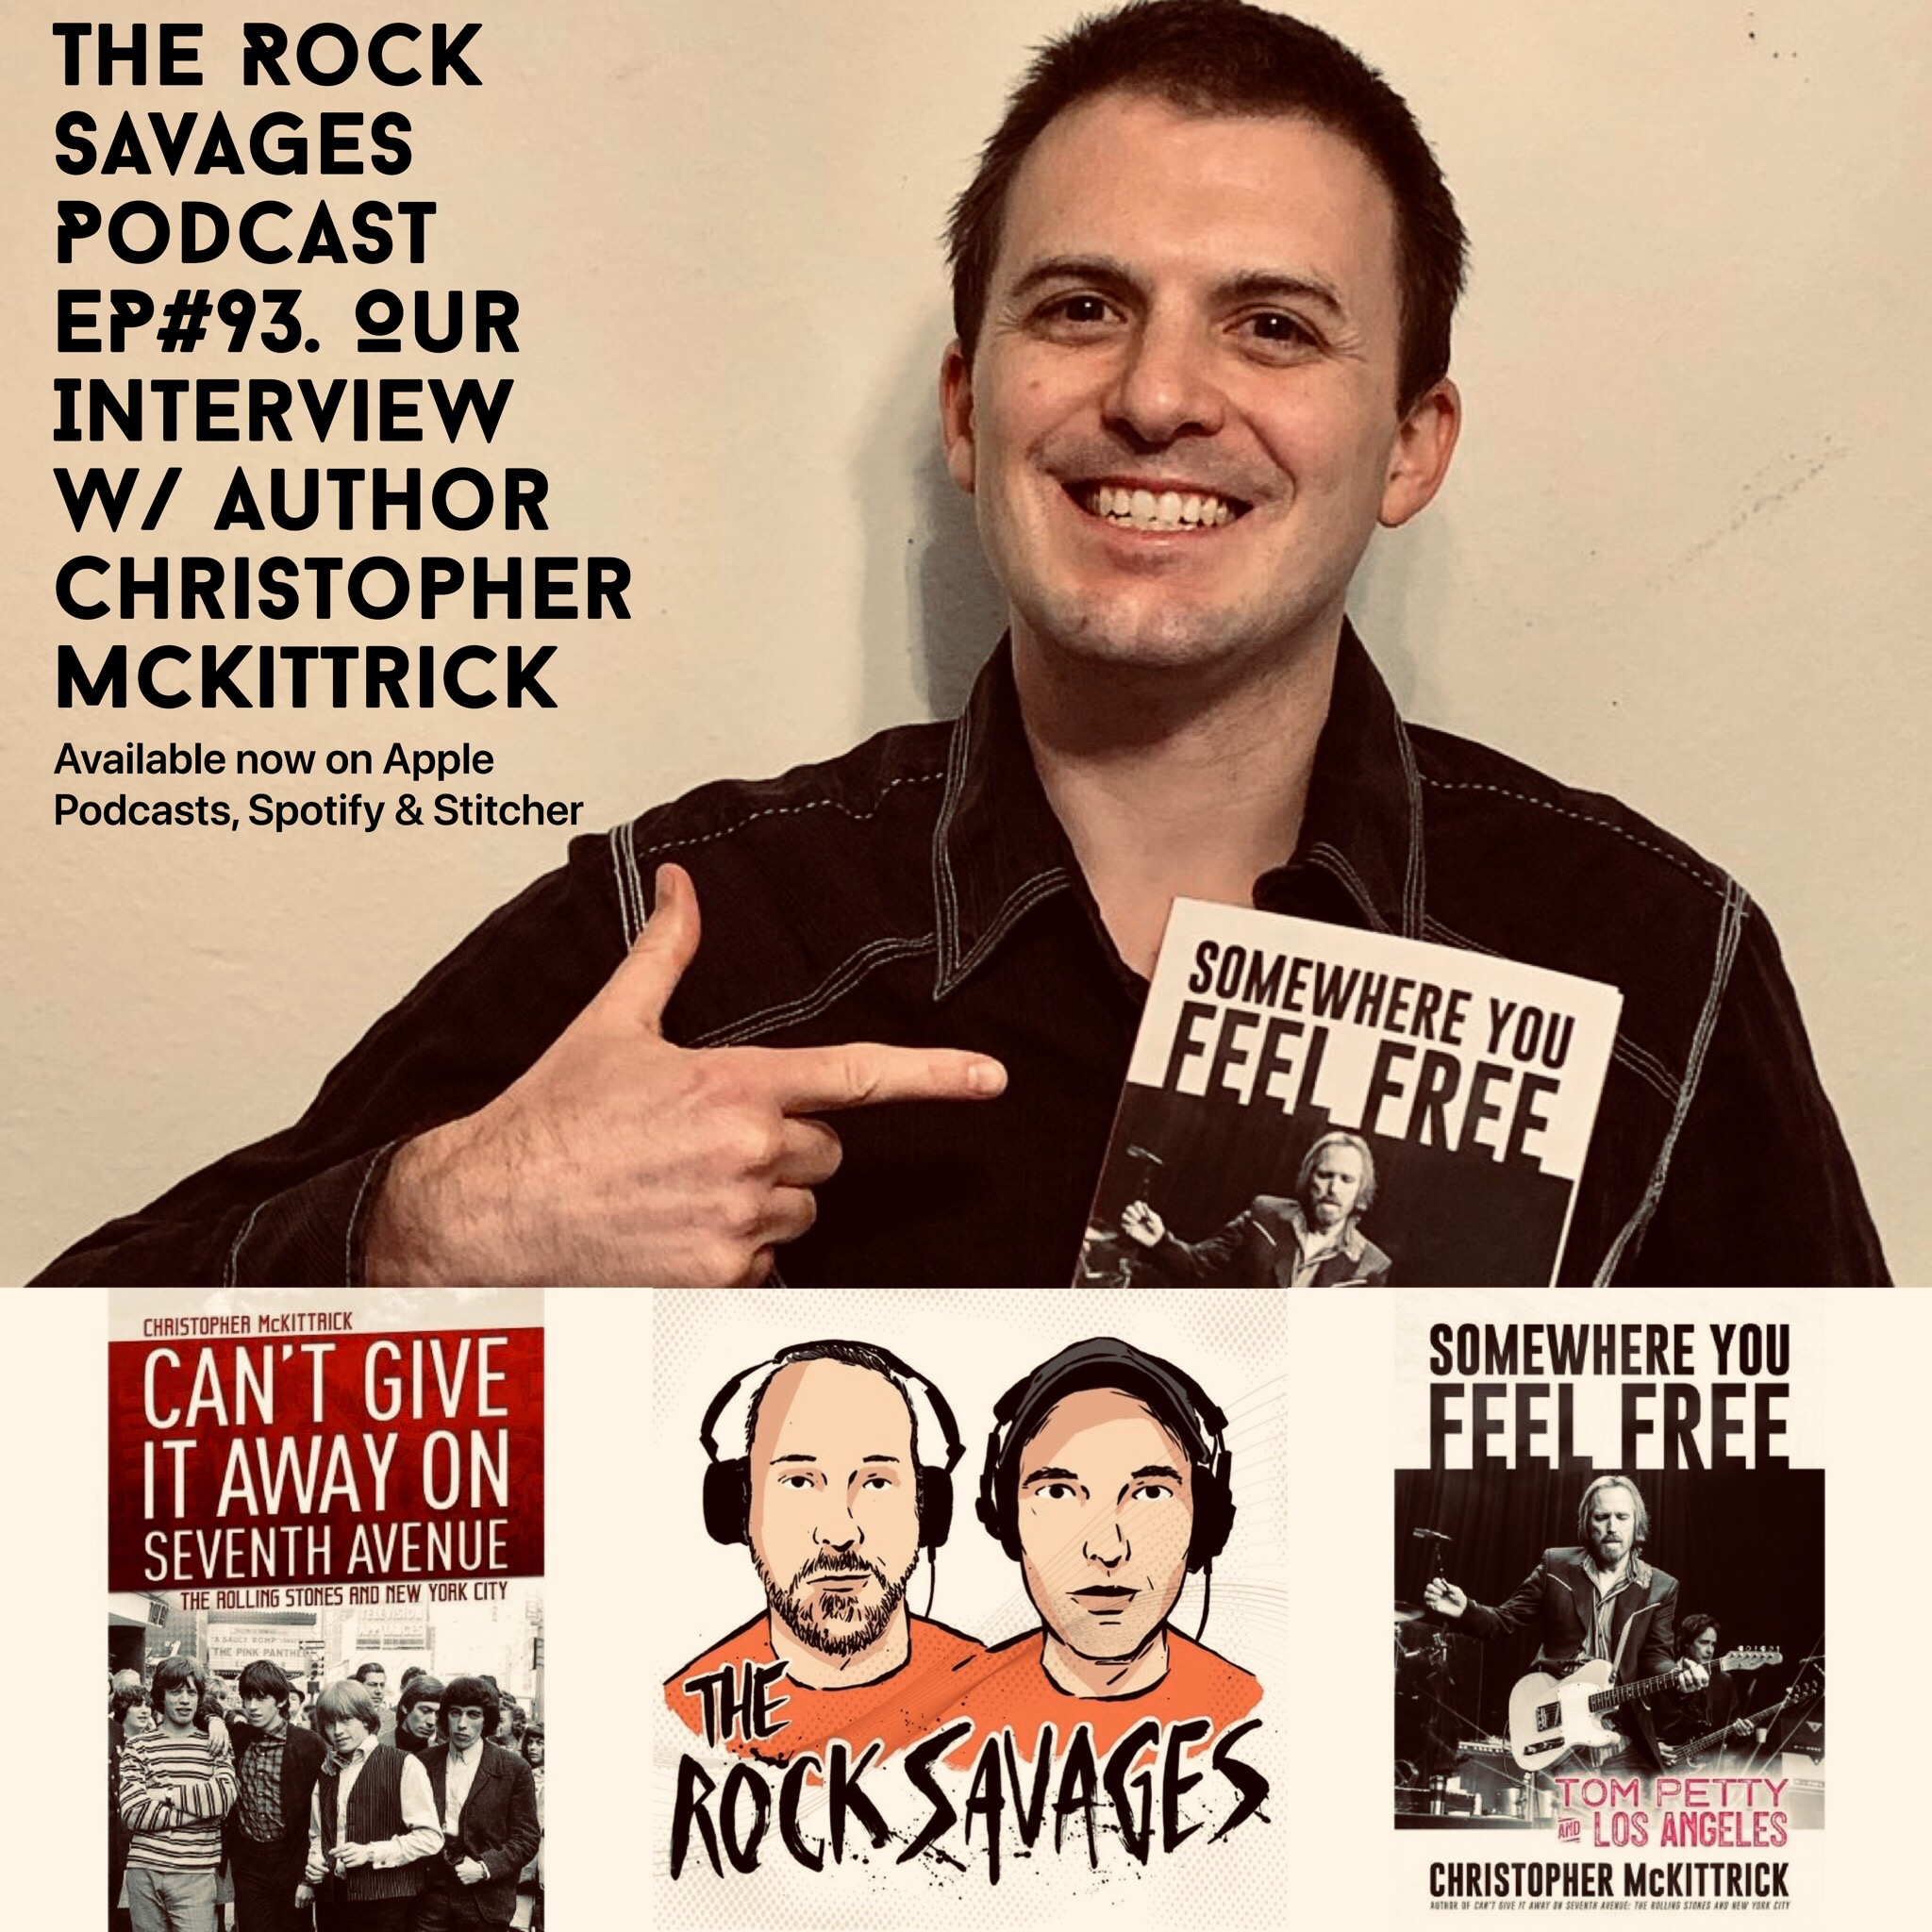 The Rock Savages Podcast Interview Tom Petty Author Christopher McKittrick